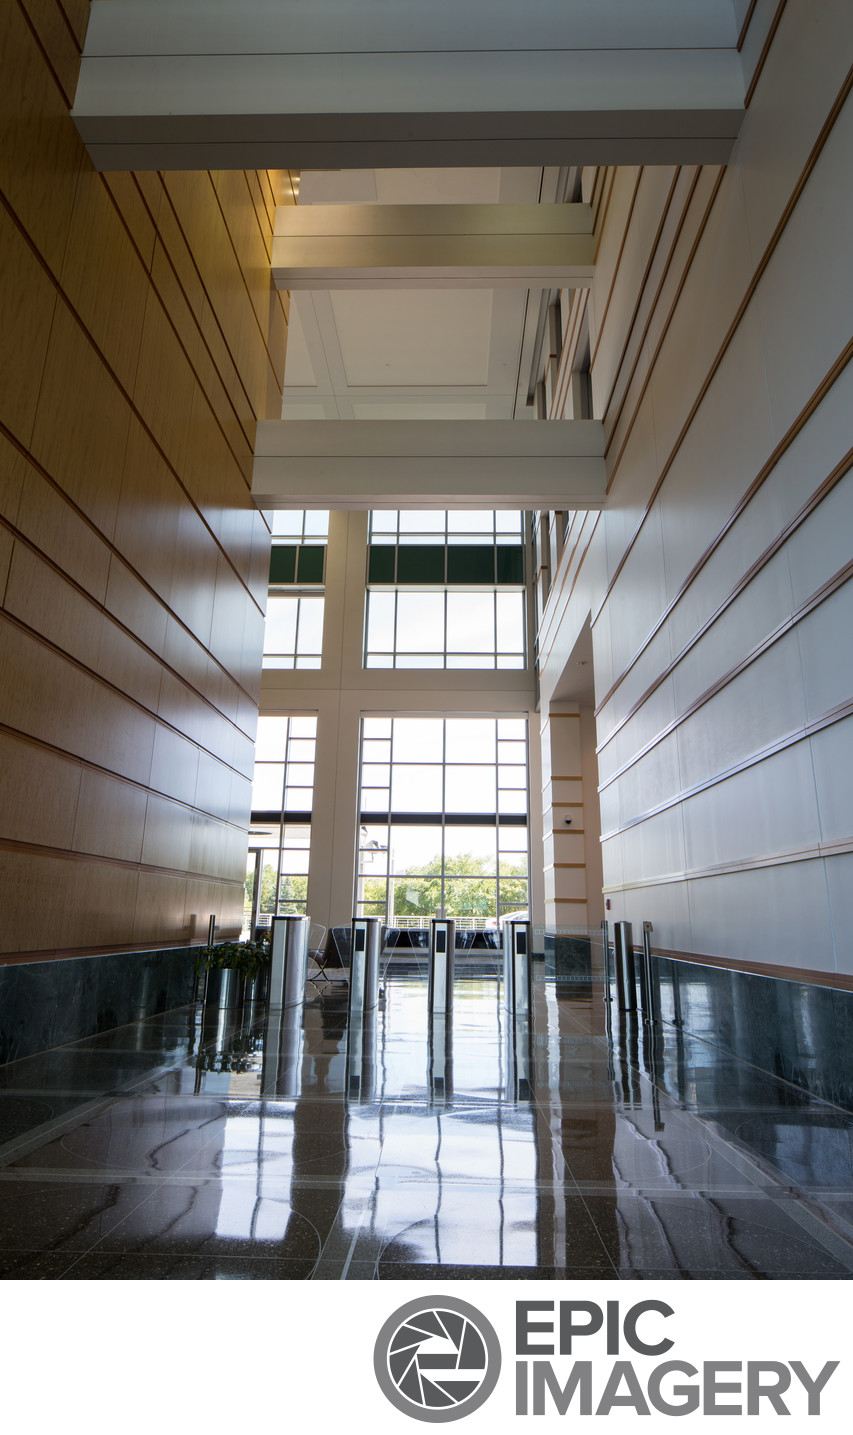 Architectural Interior of Corporate Office Building